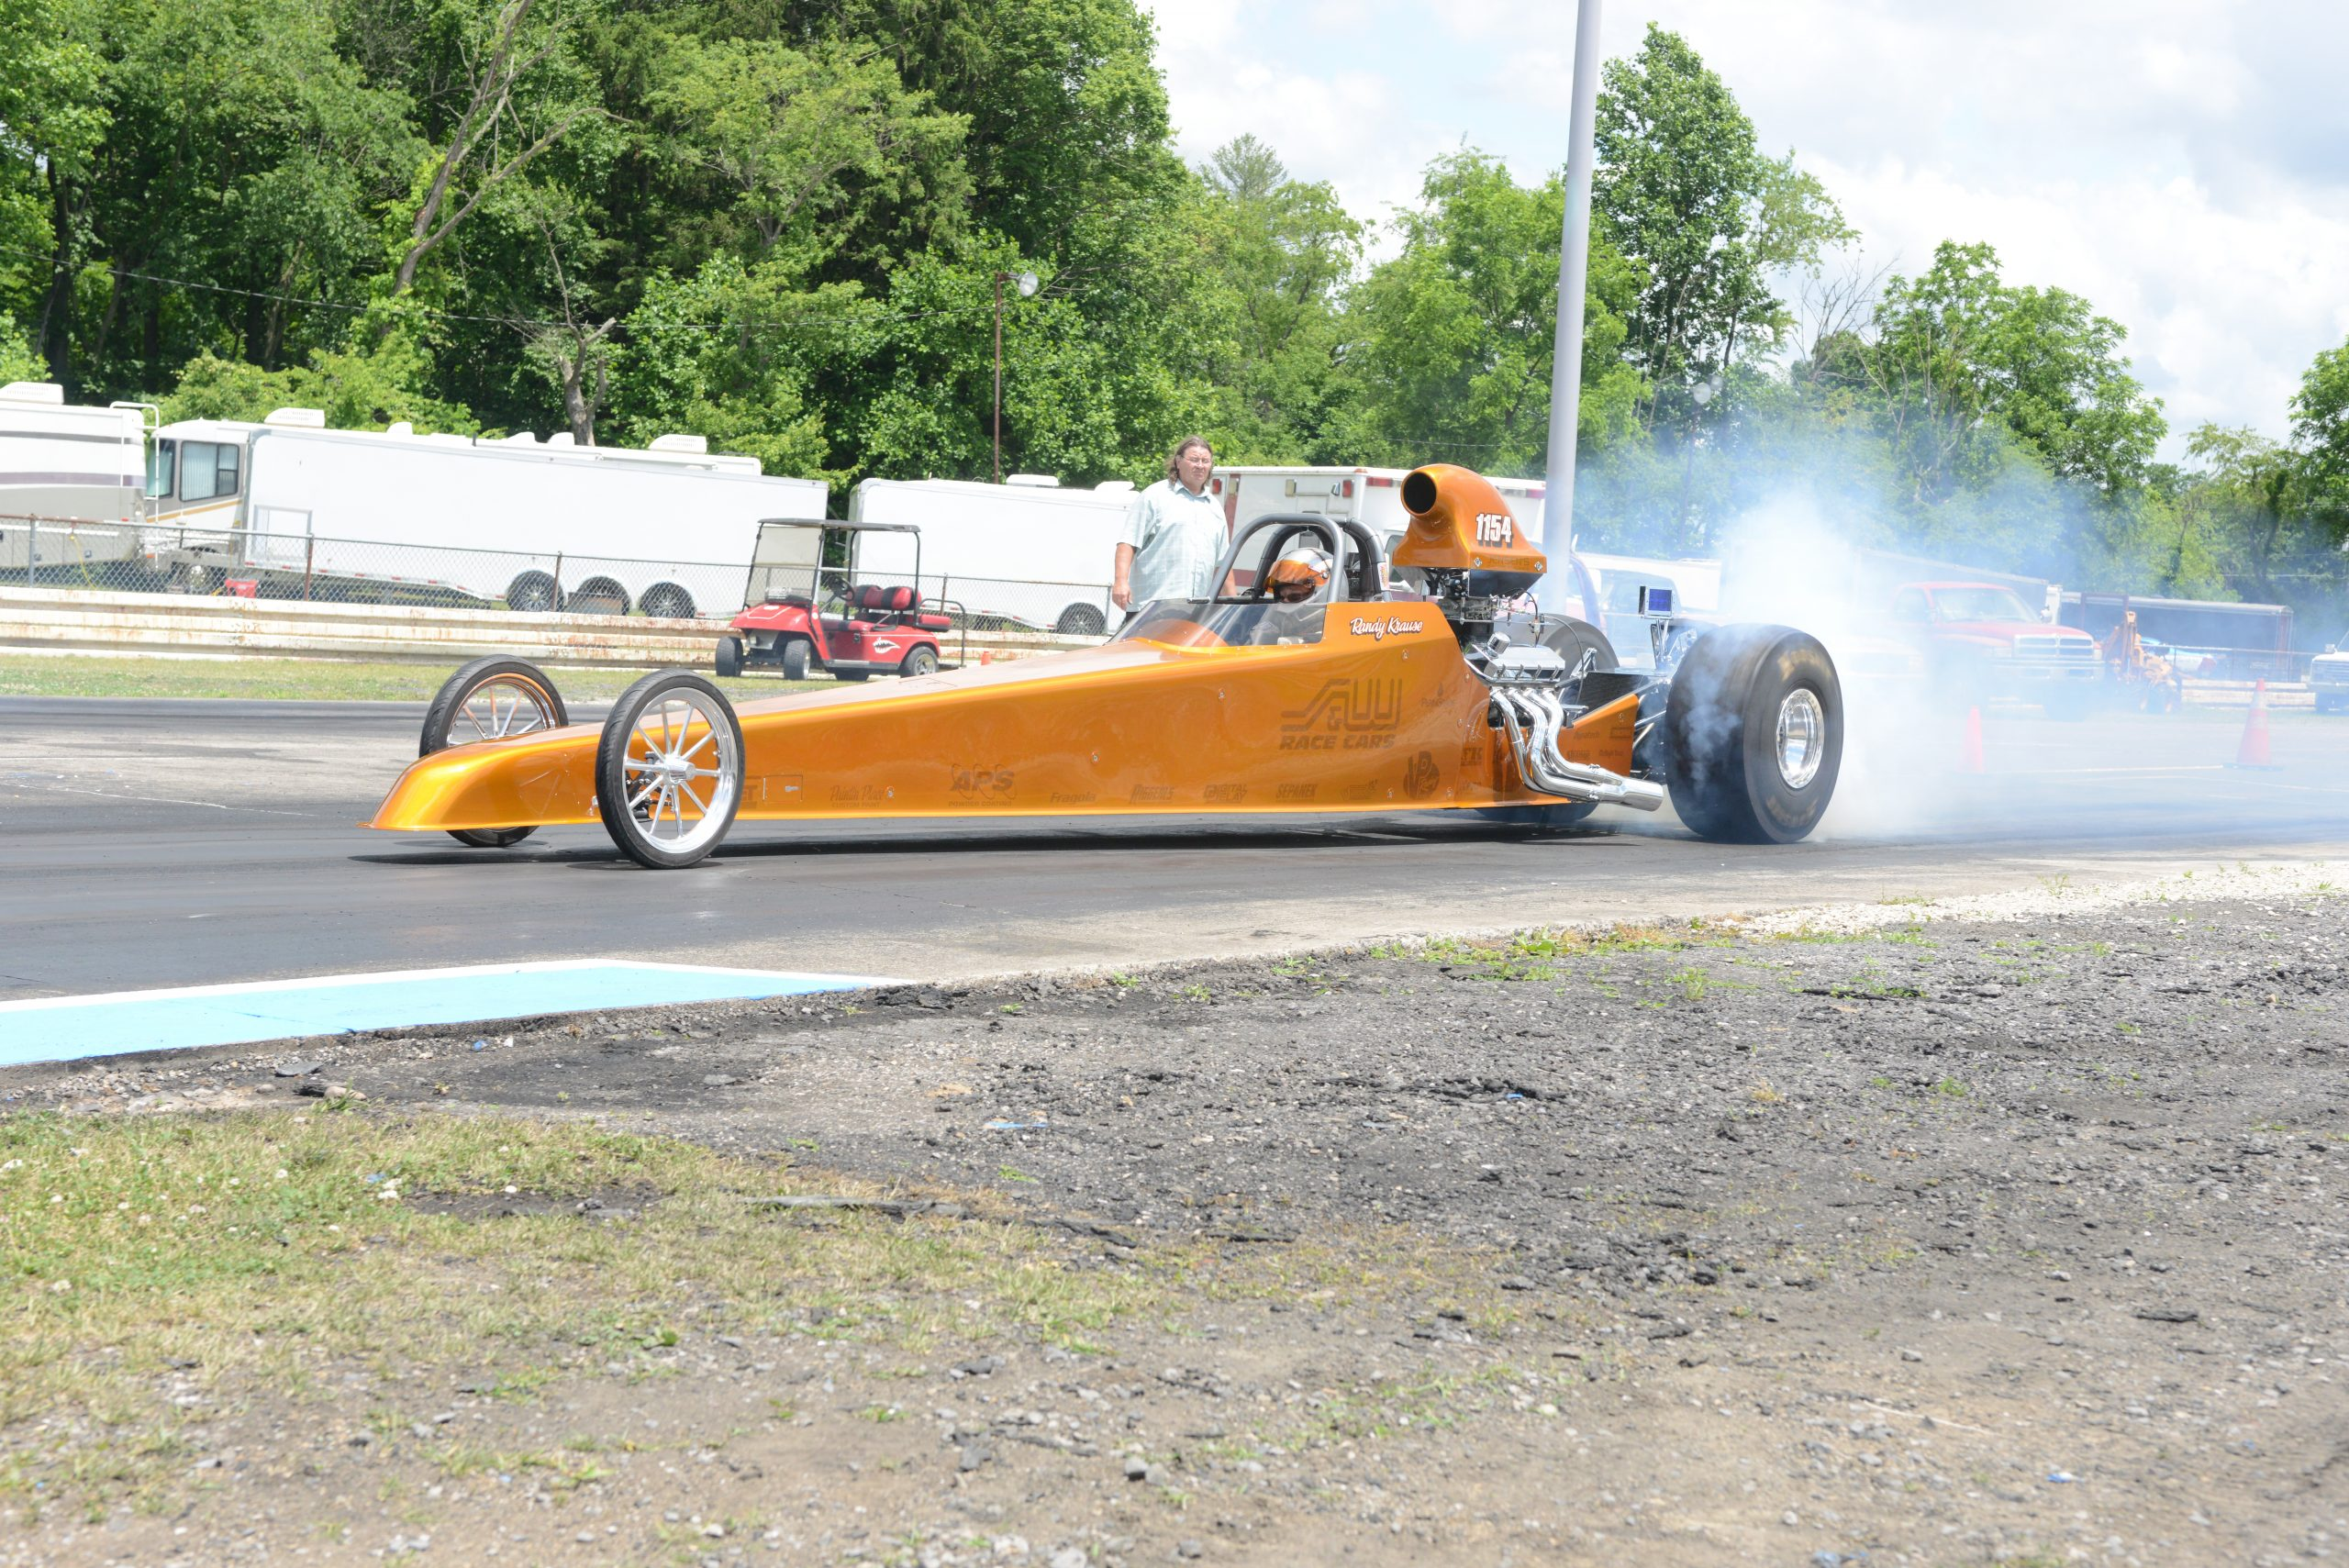 Randy Krause S&W 60th Anniversary Dragster 2020